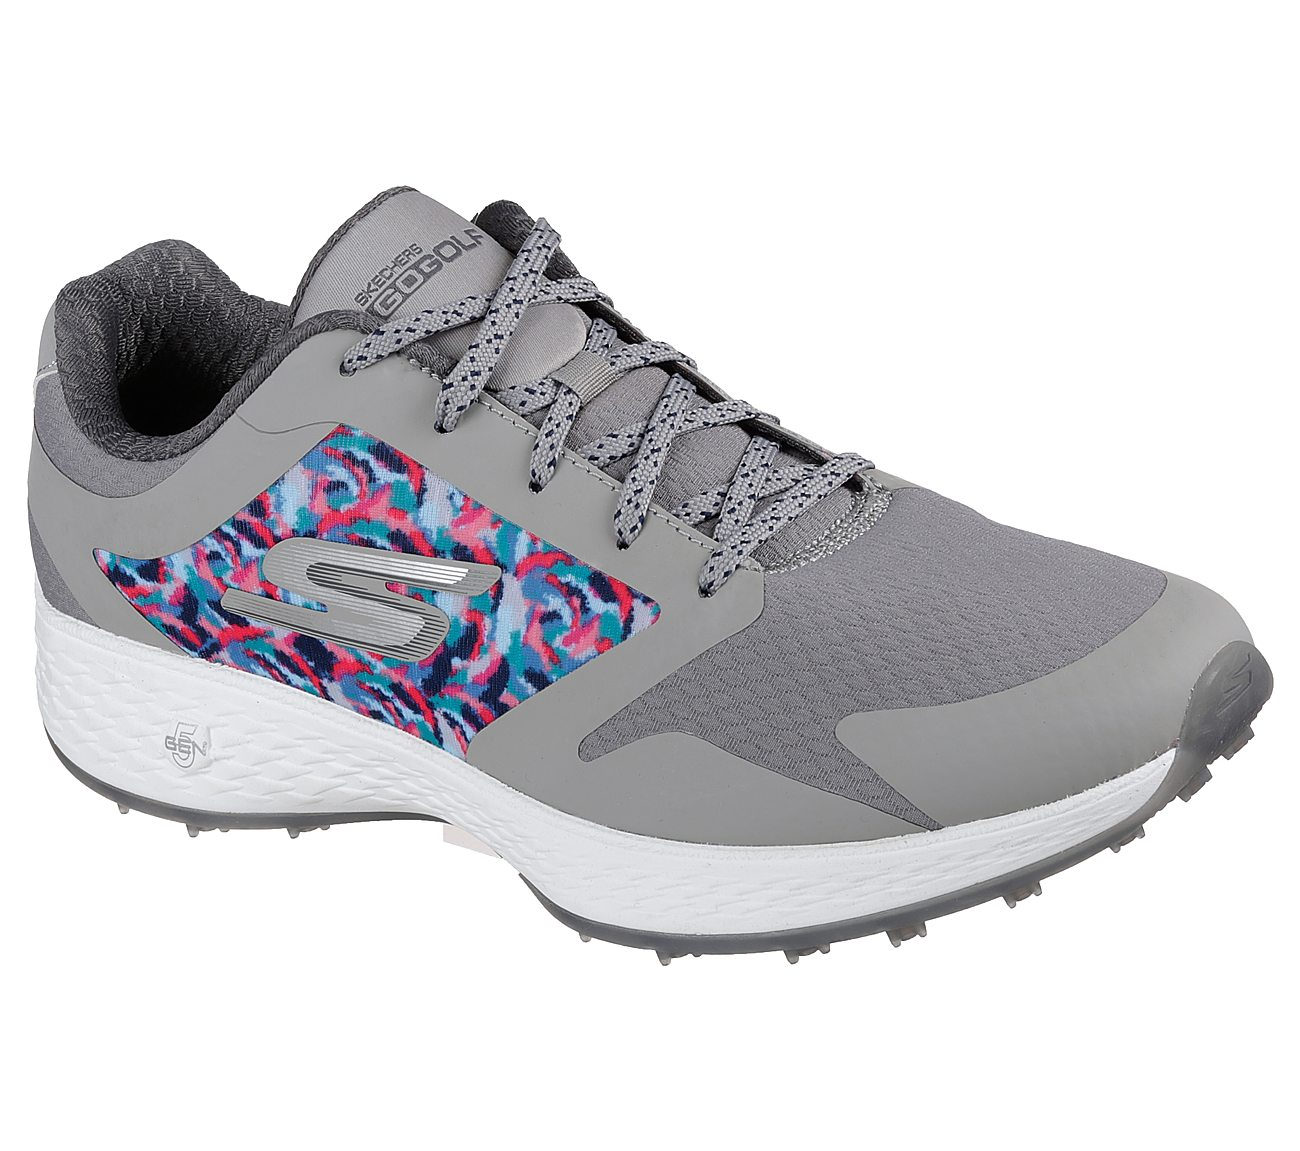 Skechers Women's Go Golf Eagle Golf Shoe - Grey